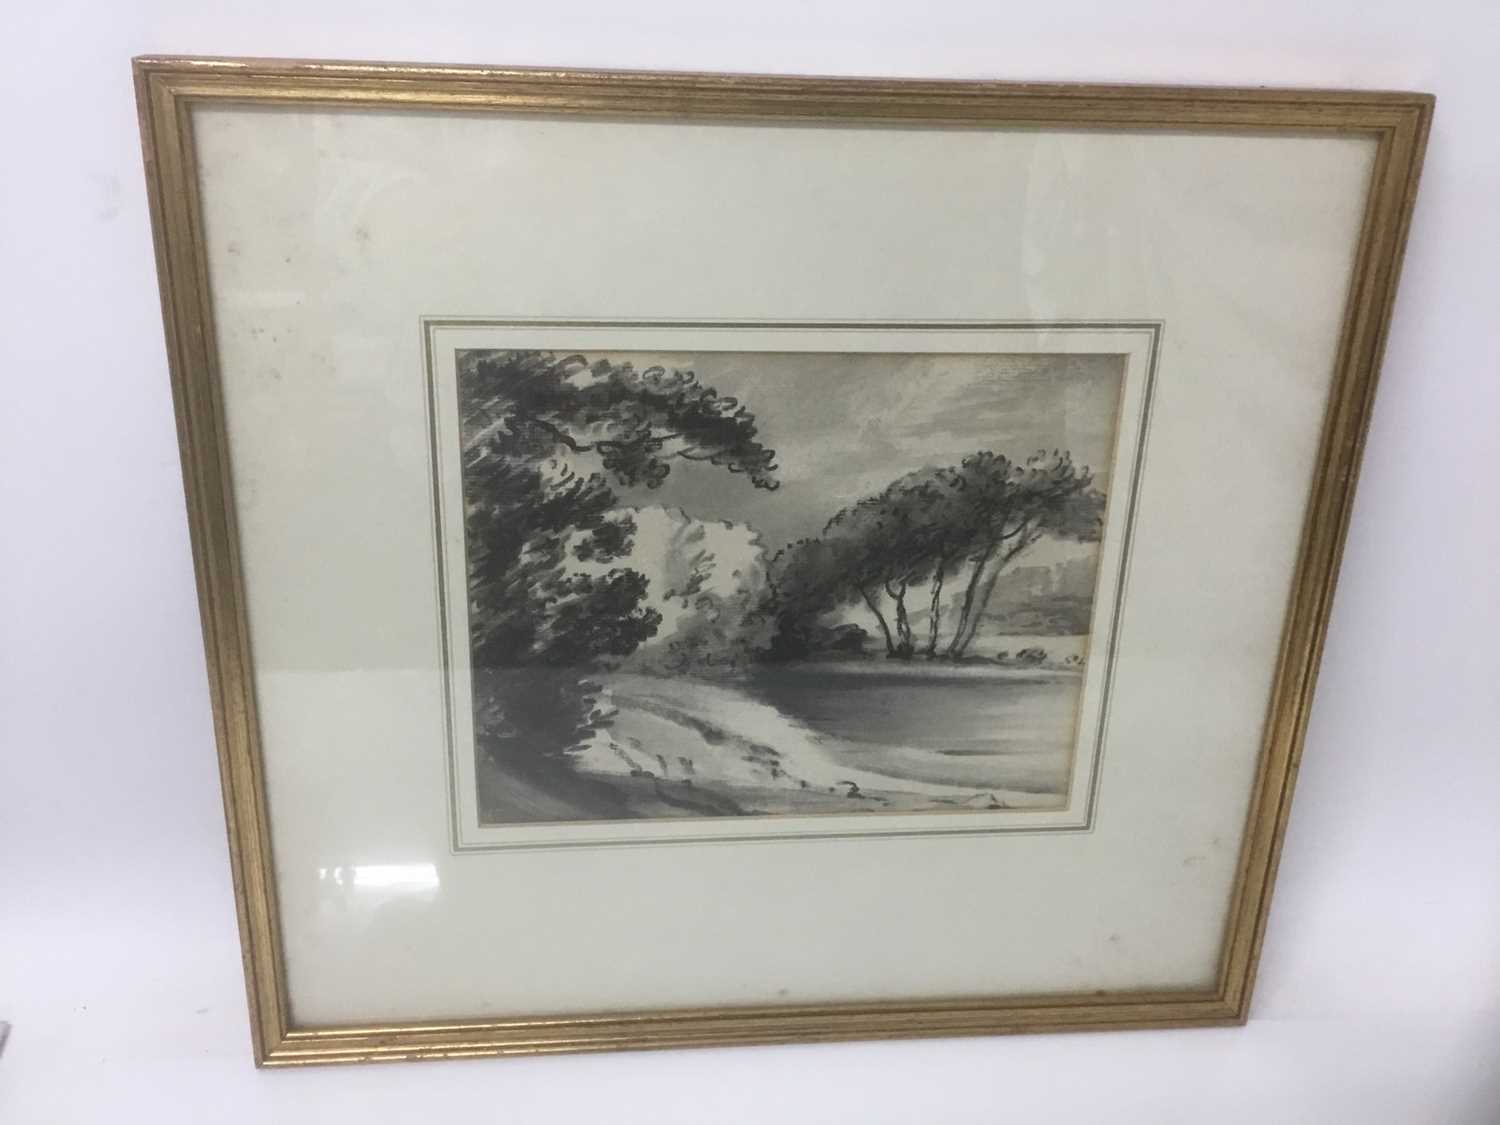 Thomas Monro (1759-1833) charcoal and wash - a landscape, in glazed gilt frame - Image 2 of 6